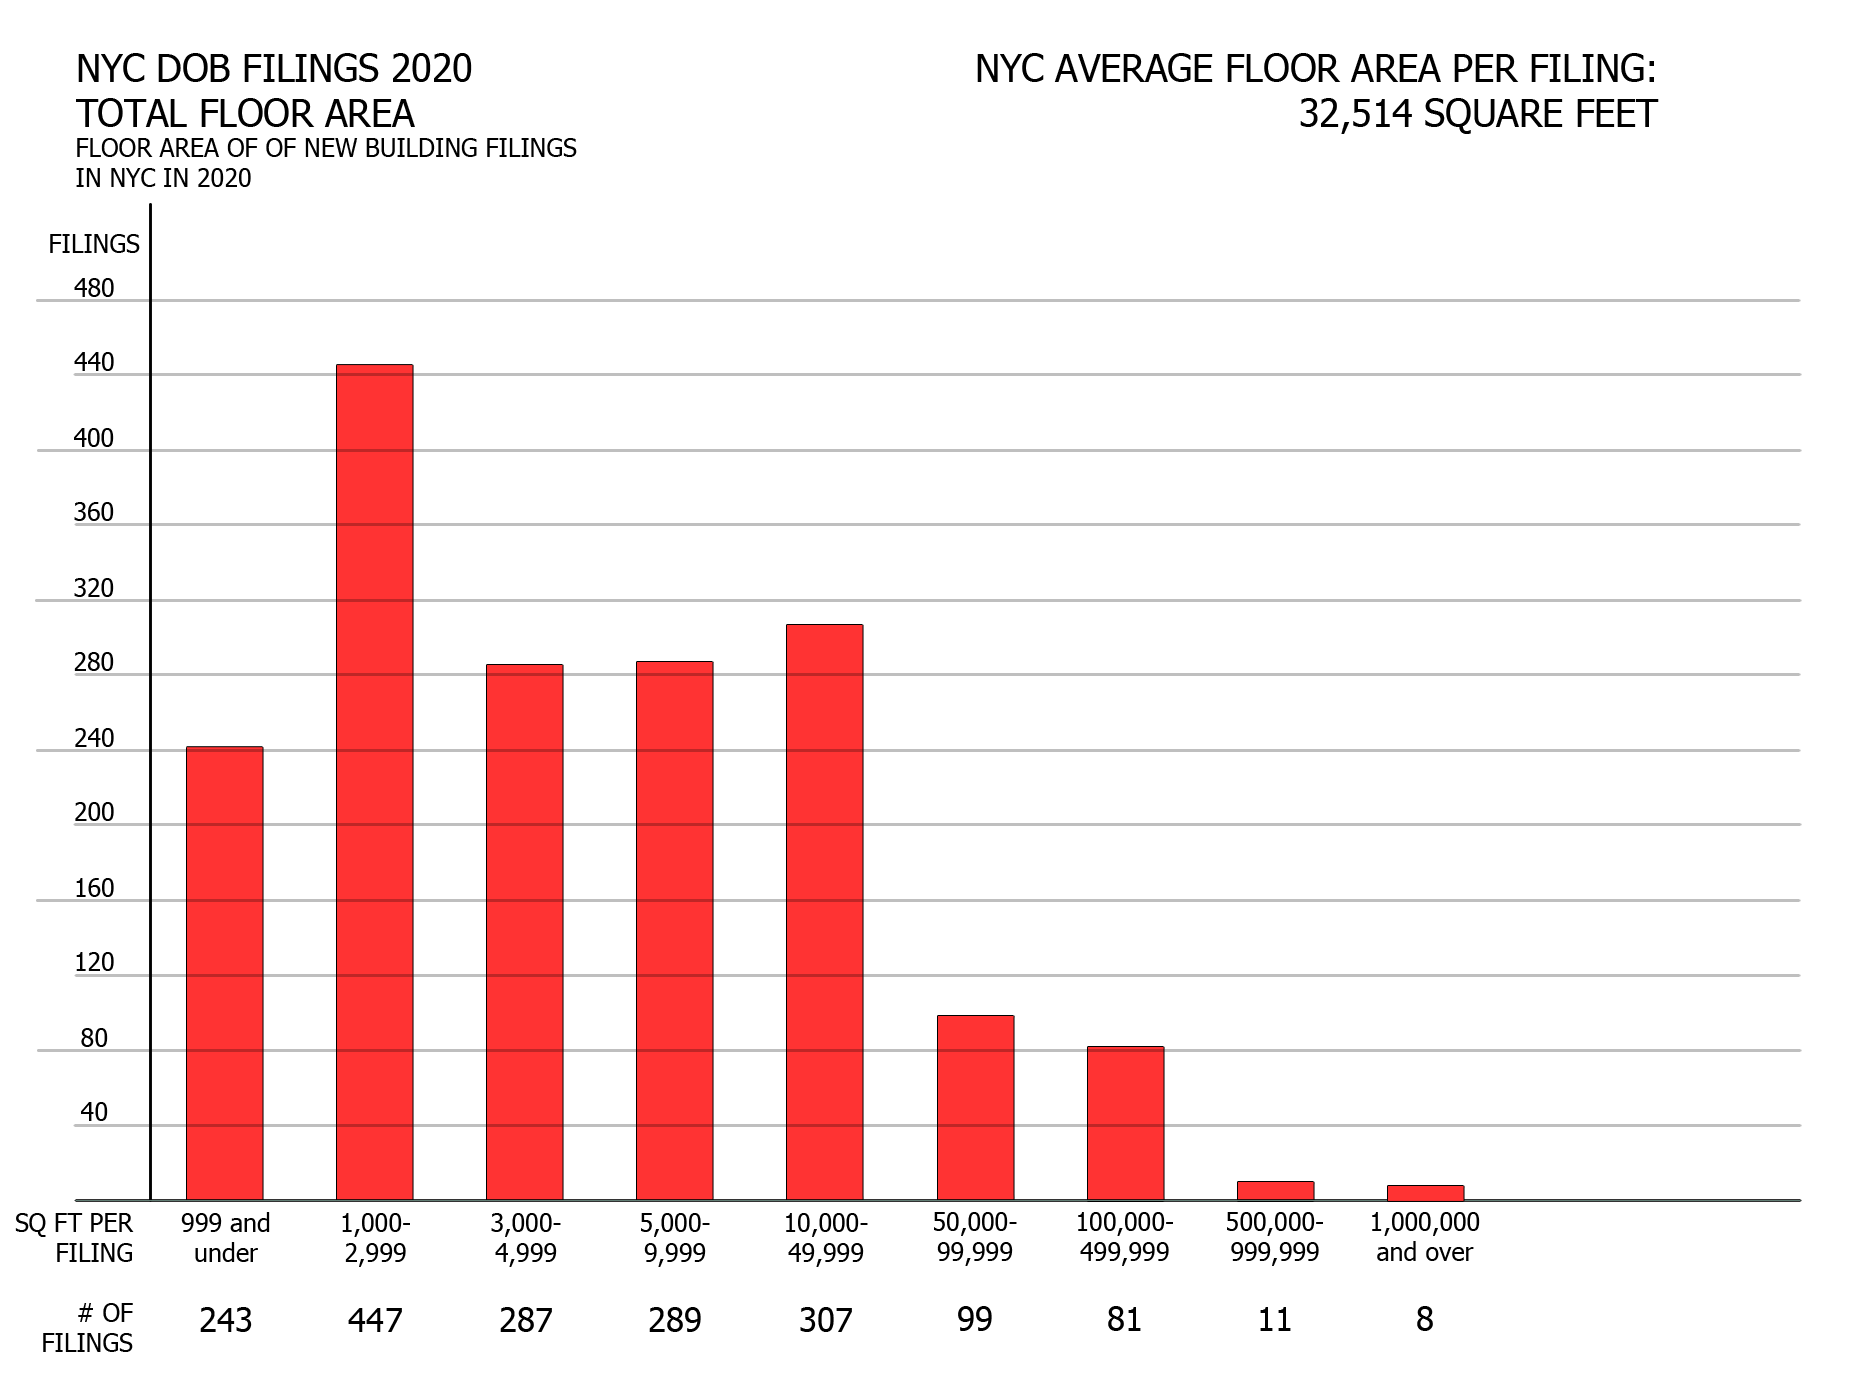 NYC DOB filings in 2020 by floor area. Credit: Vitali Ogorodnikov